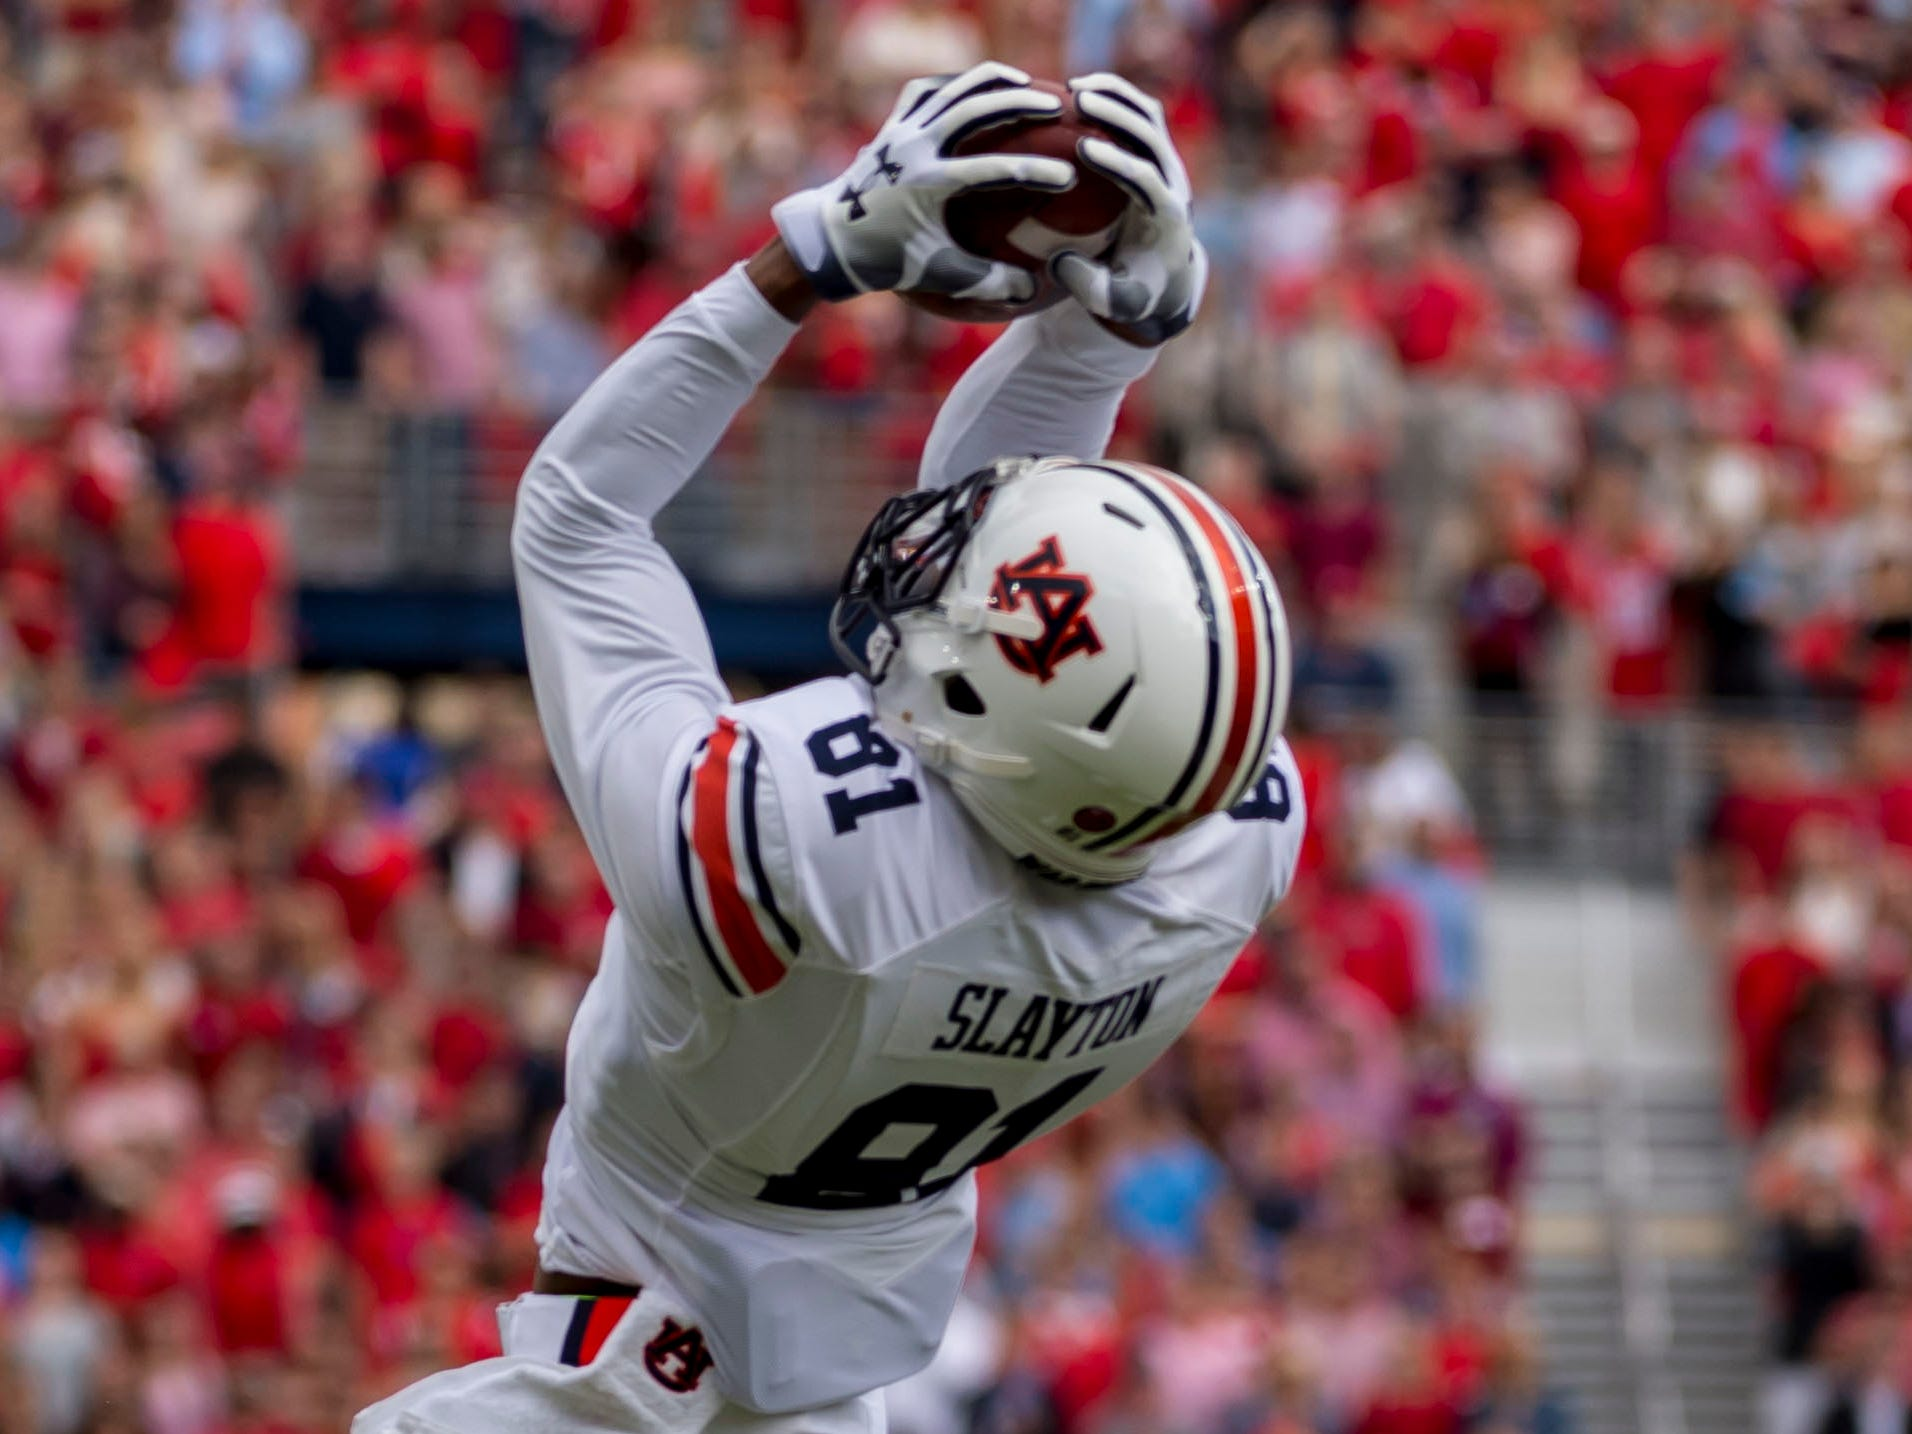 Auburn Tigers wide receiver Darius Slayton (81) makes a leaping grab in the red zone against the Mississippi Rebels during the first half at Vaught-Hemingway Stadium.